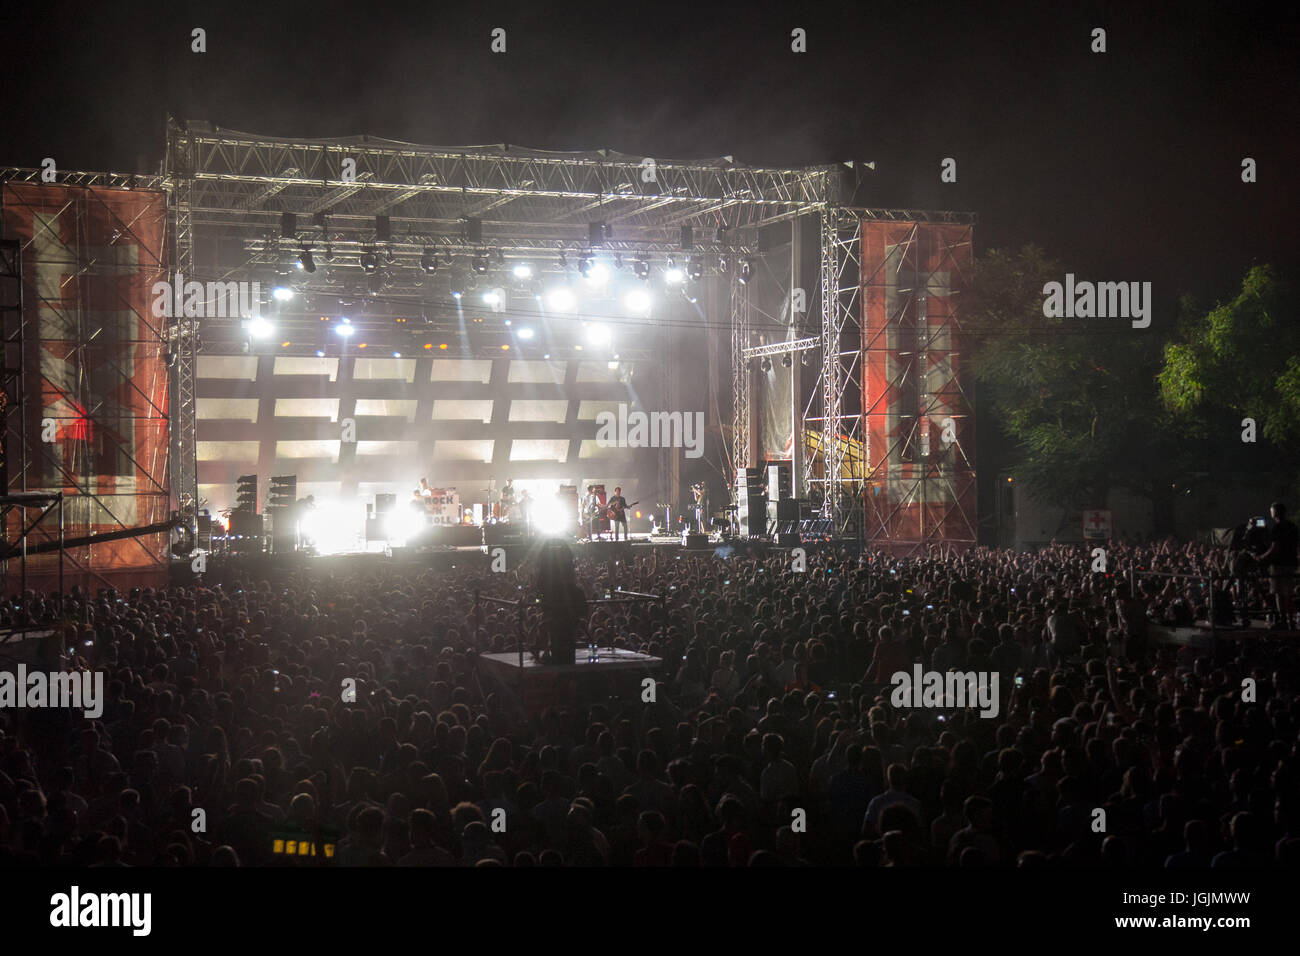 Novi Sad, Serbia. 7th Jul, 2017. Crowd cheering at Liam Gallagher performing on the main stage of Exit Festival. - Stock Image